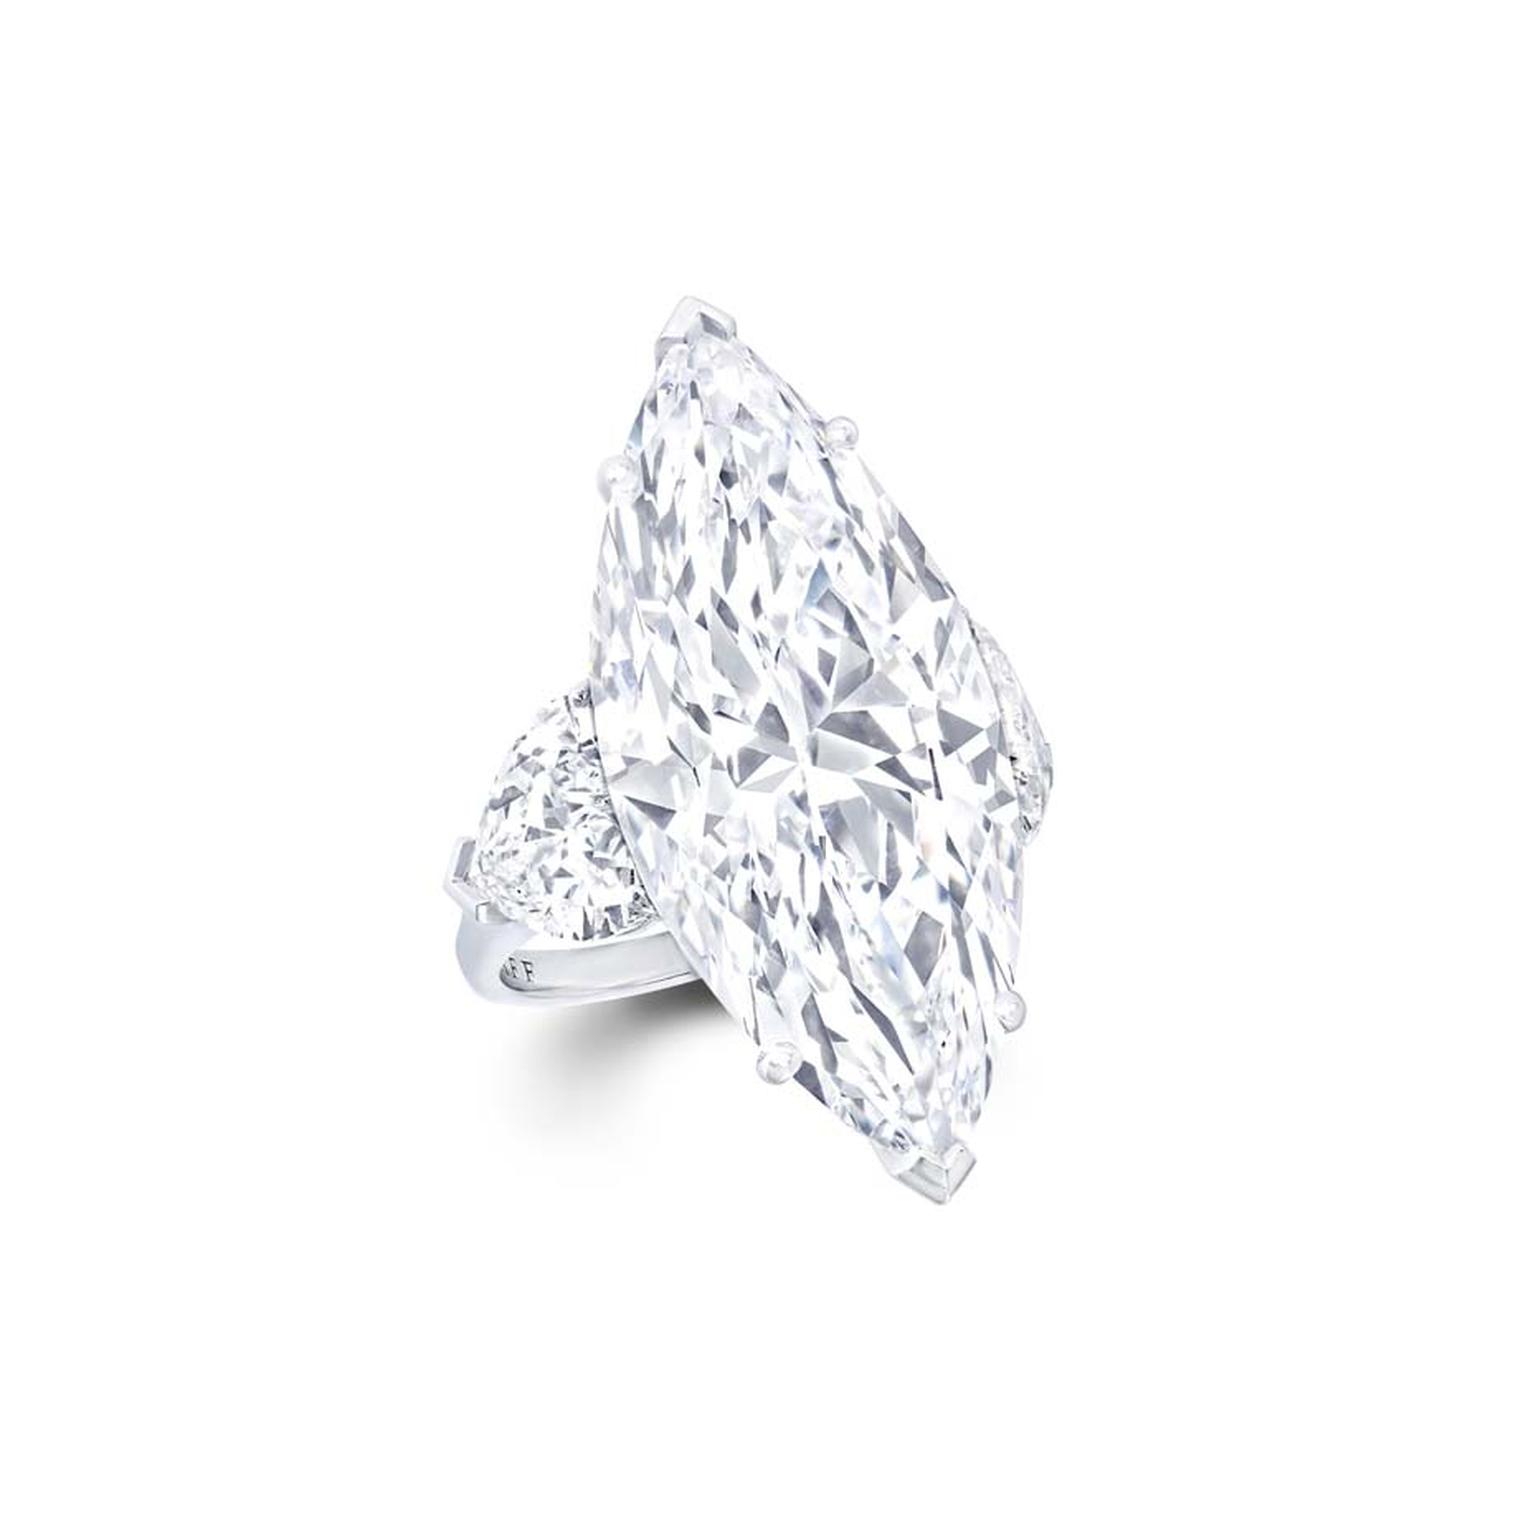 Magnificent Graff 23.20ct internally flawless marquise diamond engagement ring with heart shape diamond shoulders.